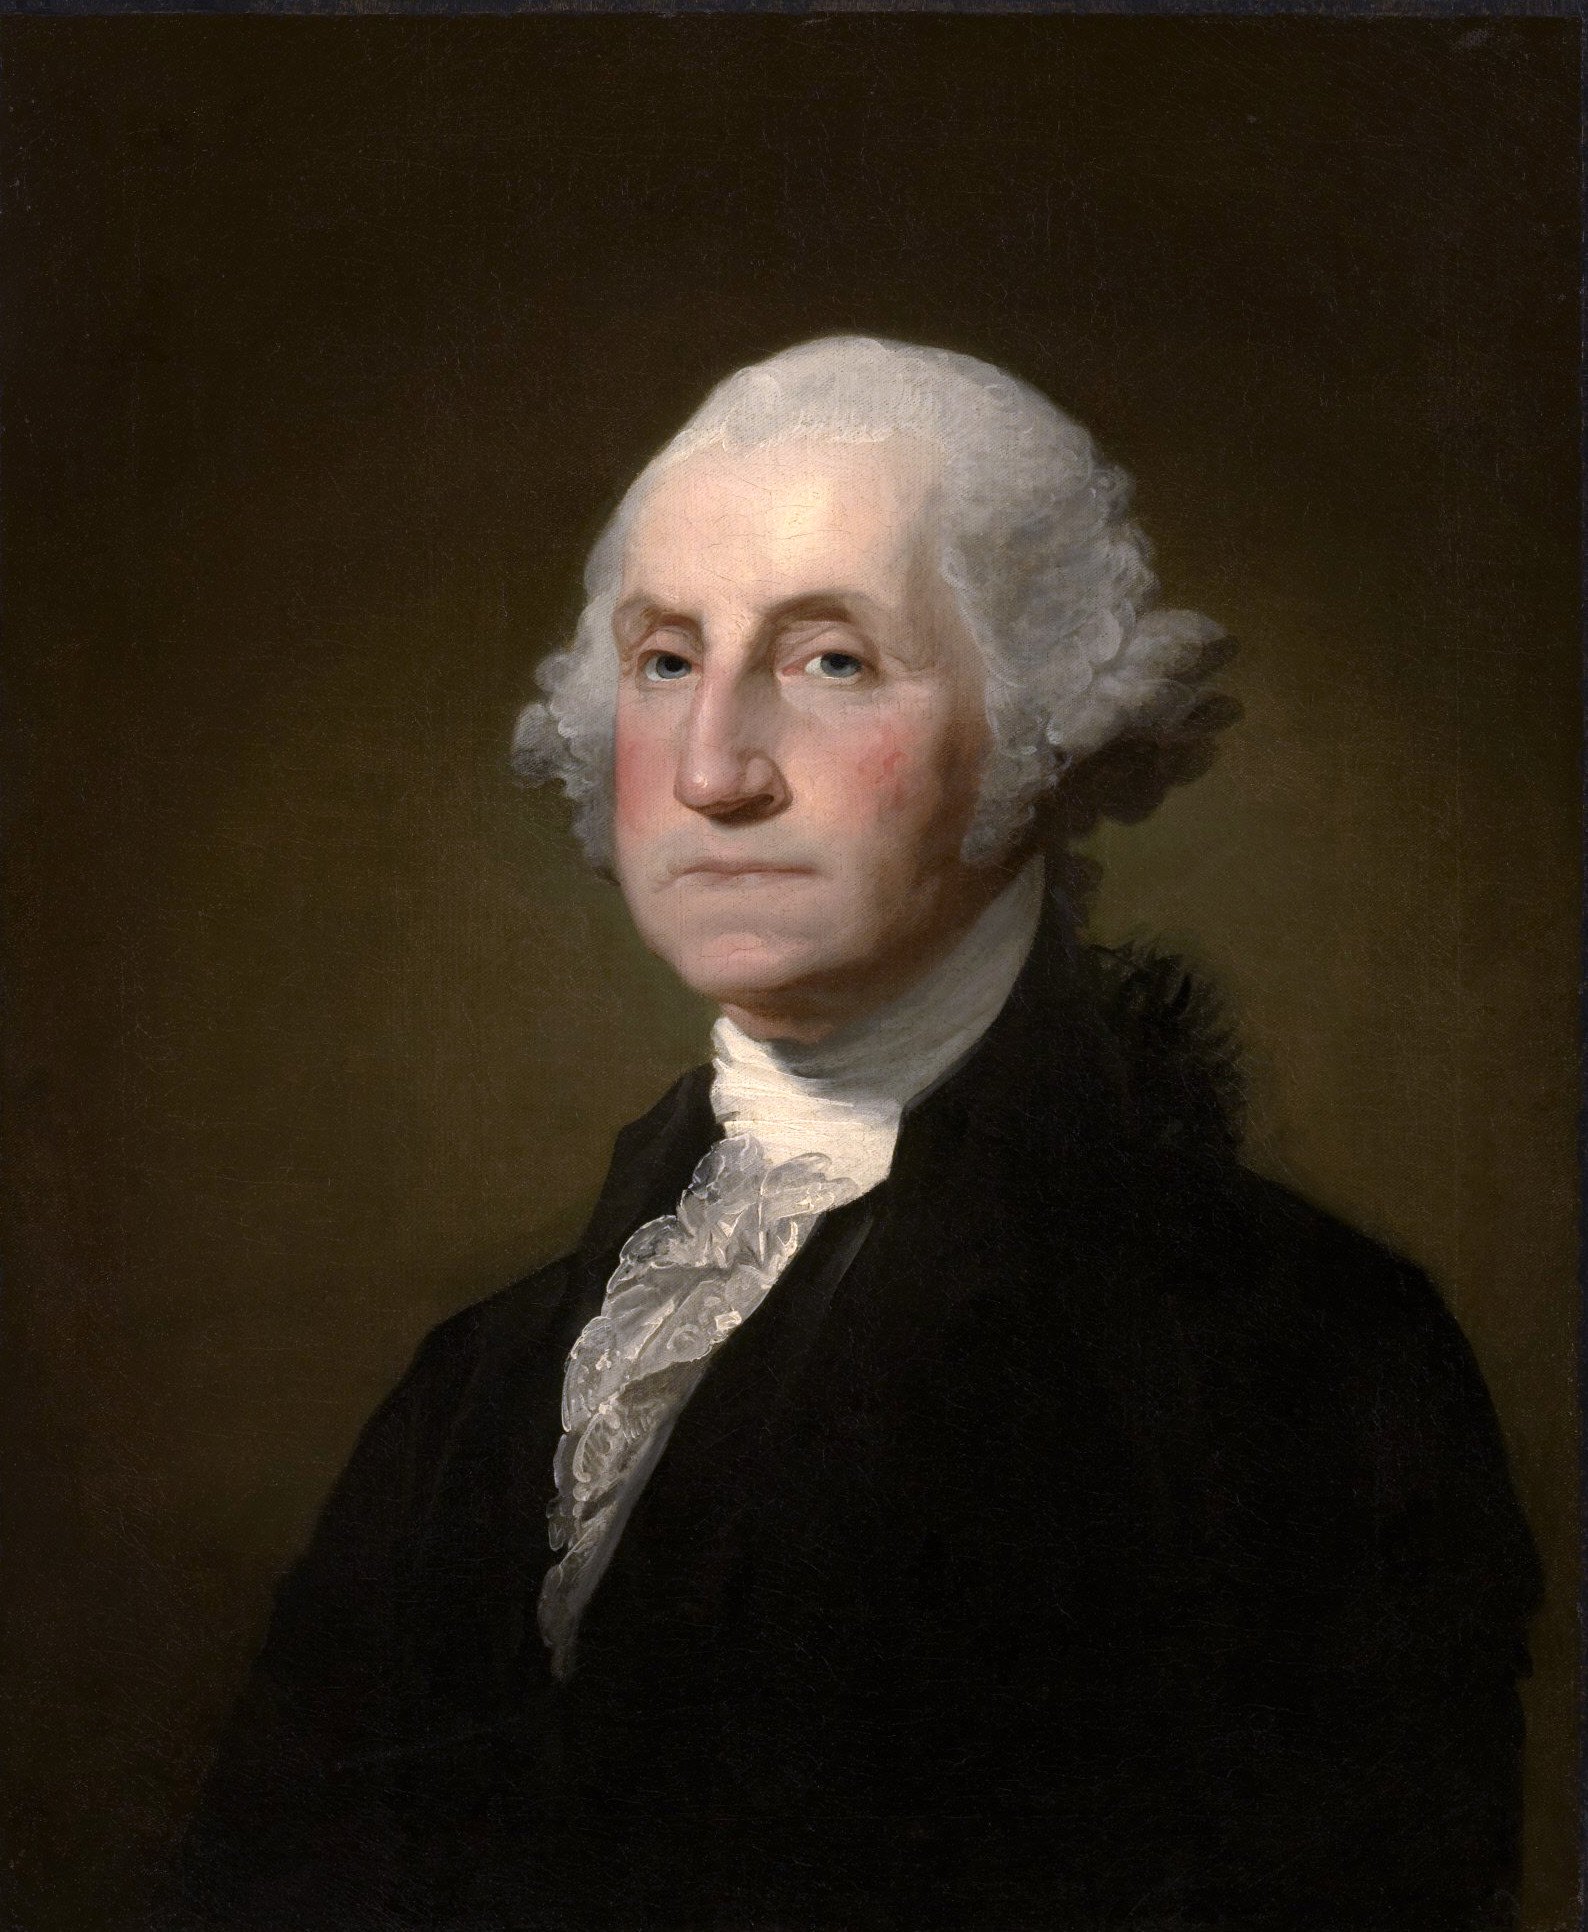 美國開國元首華盛頓(George Washington)。(WikiCommons)